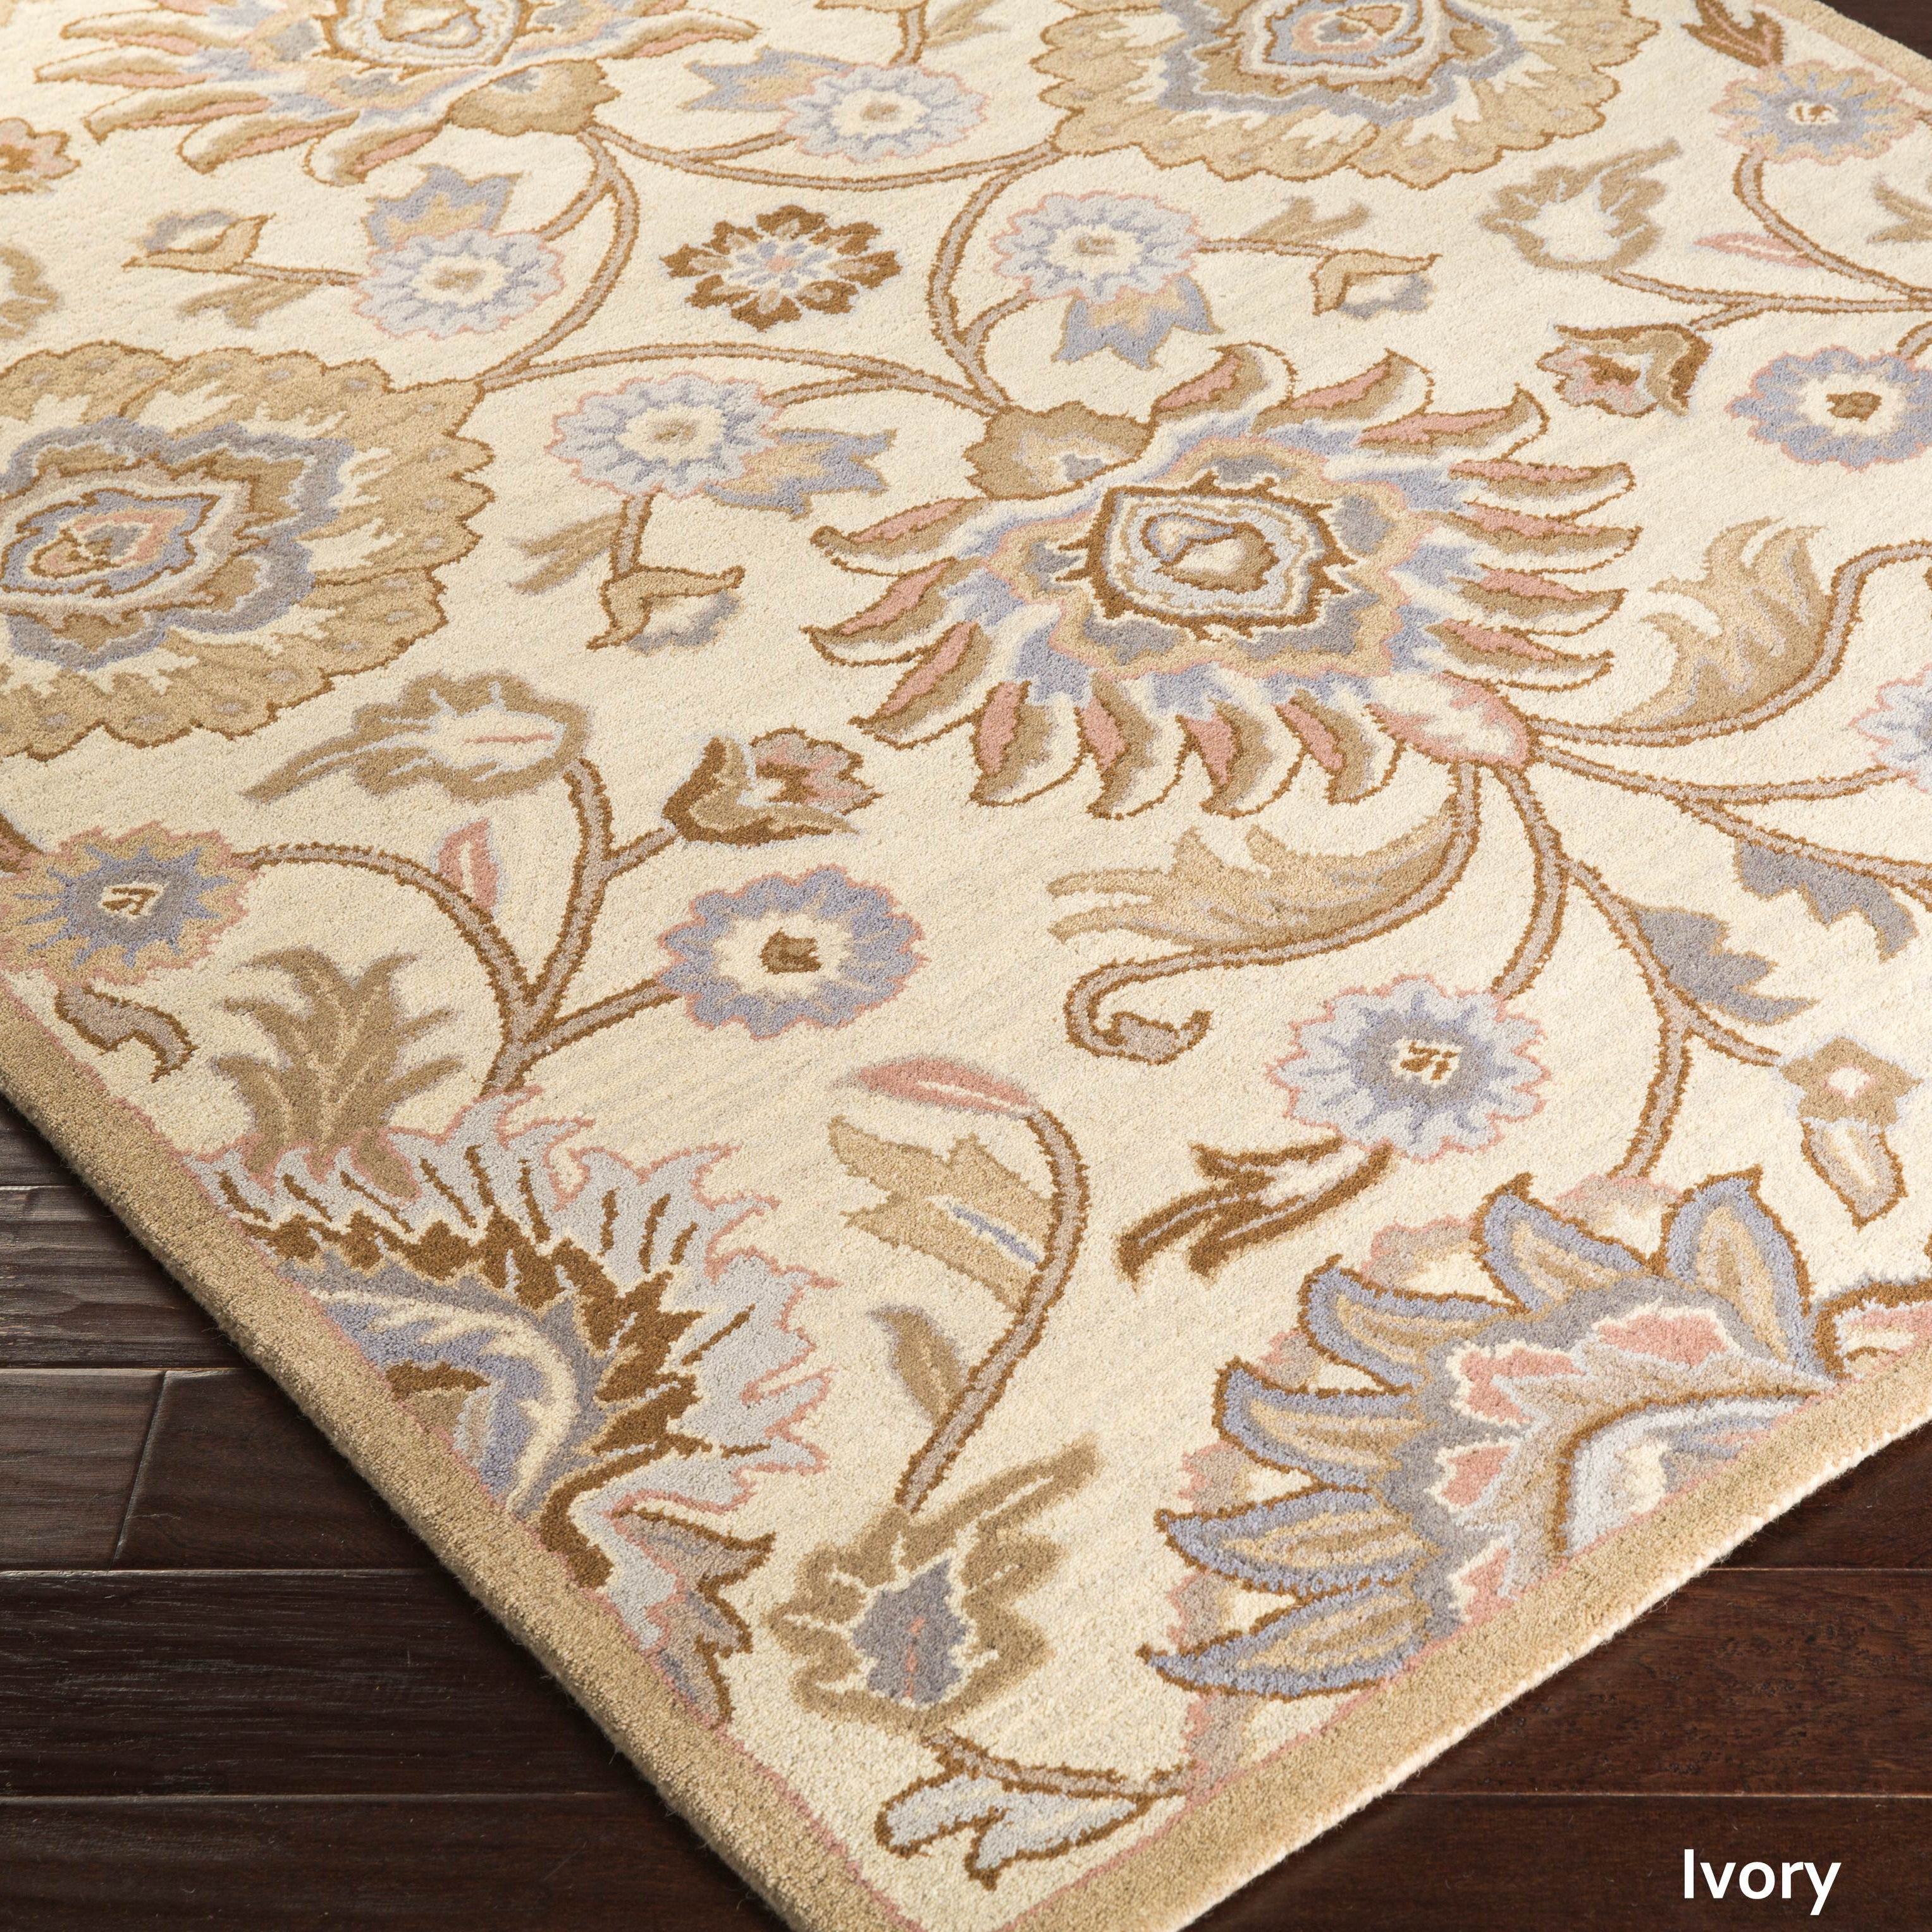 10x10 Square New Oushak Oriental Wool Area Rug: Patchway Hand-Tufted Paisley Wool Area Rug (4' X 6')